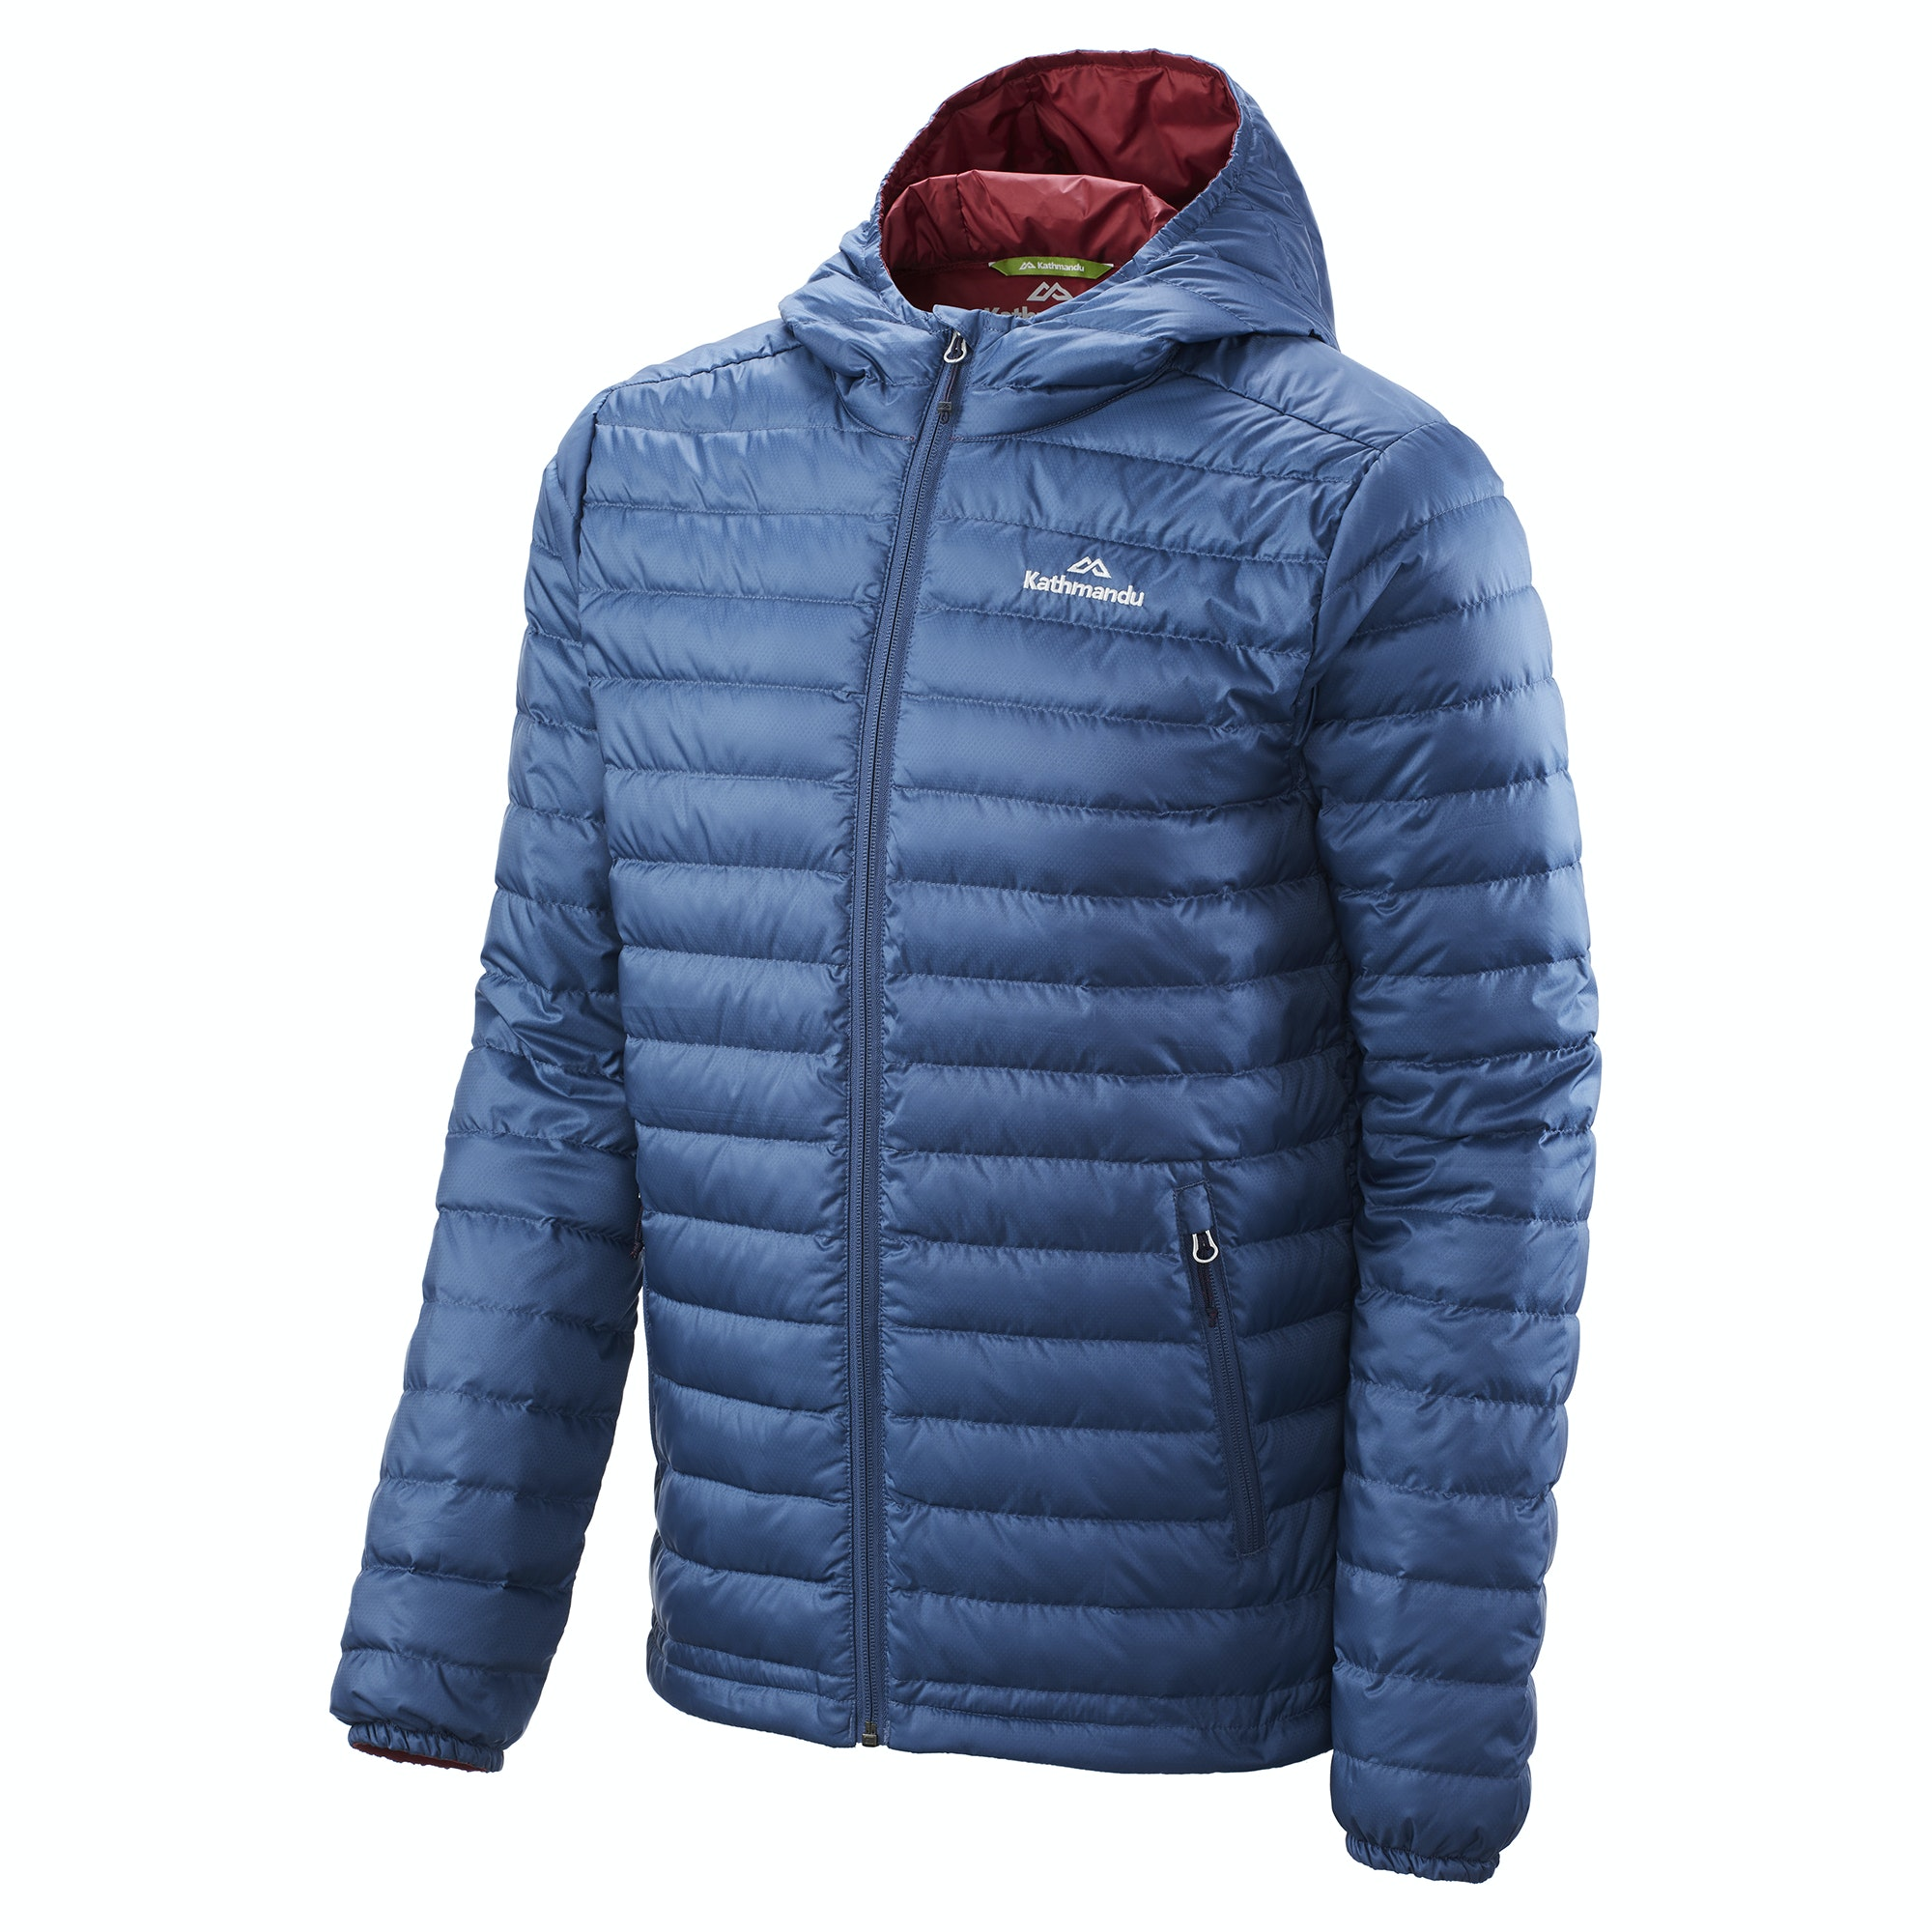 NEW-Kathmandu-Heli-Hooded-Lightweight-Compact-Water-Repellent-Warm-Men-Down thumbnail 15